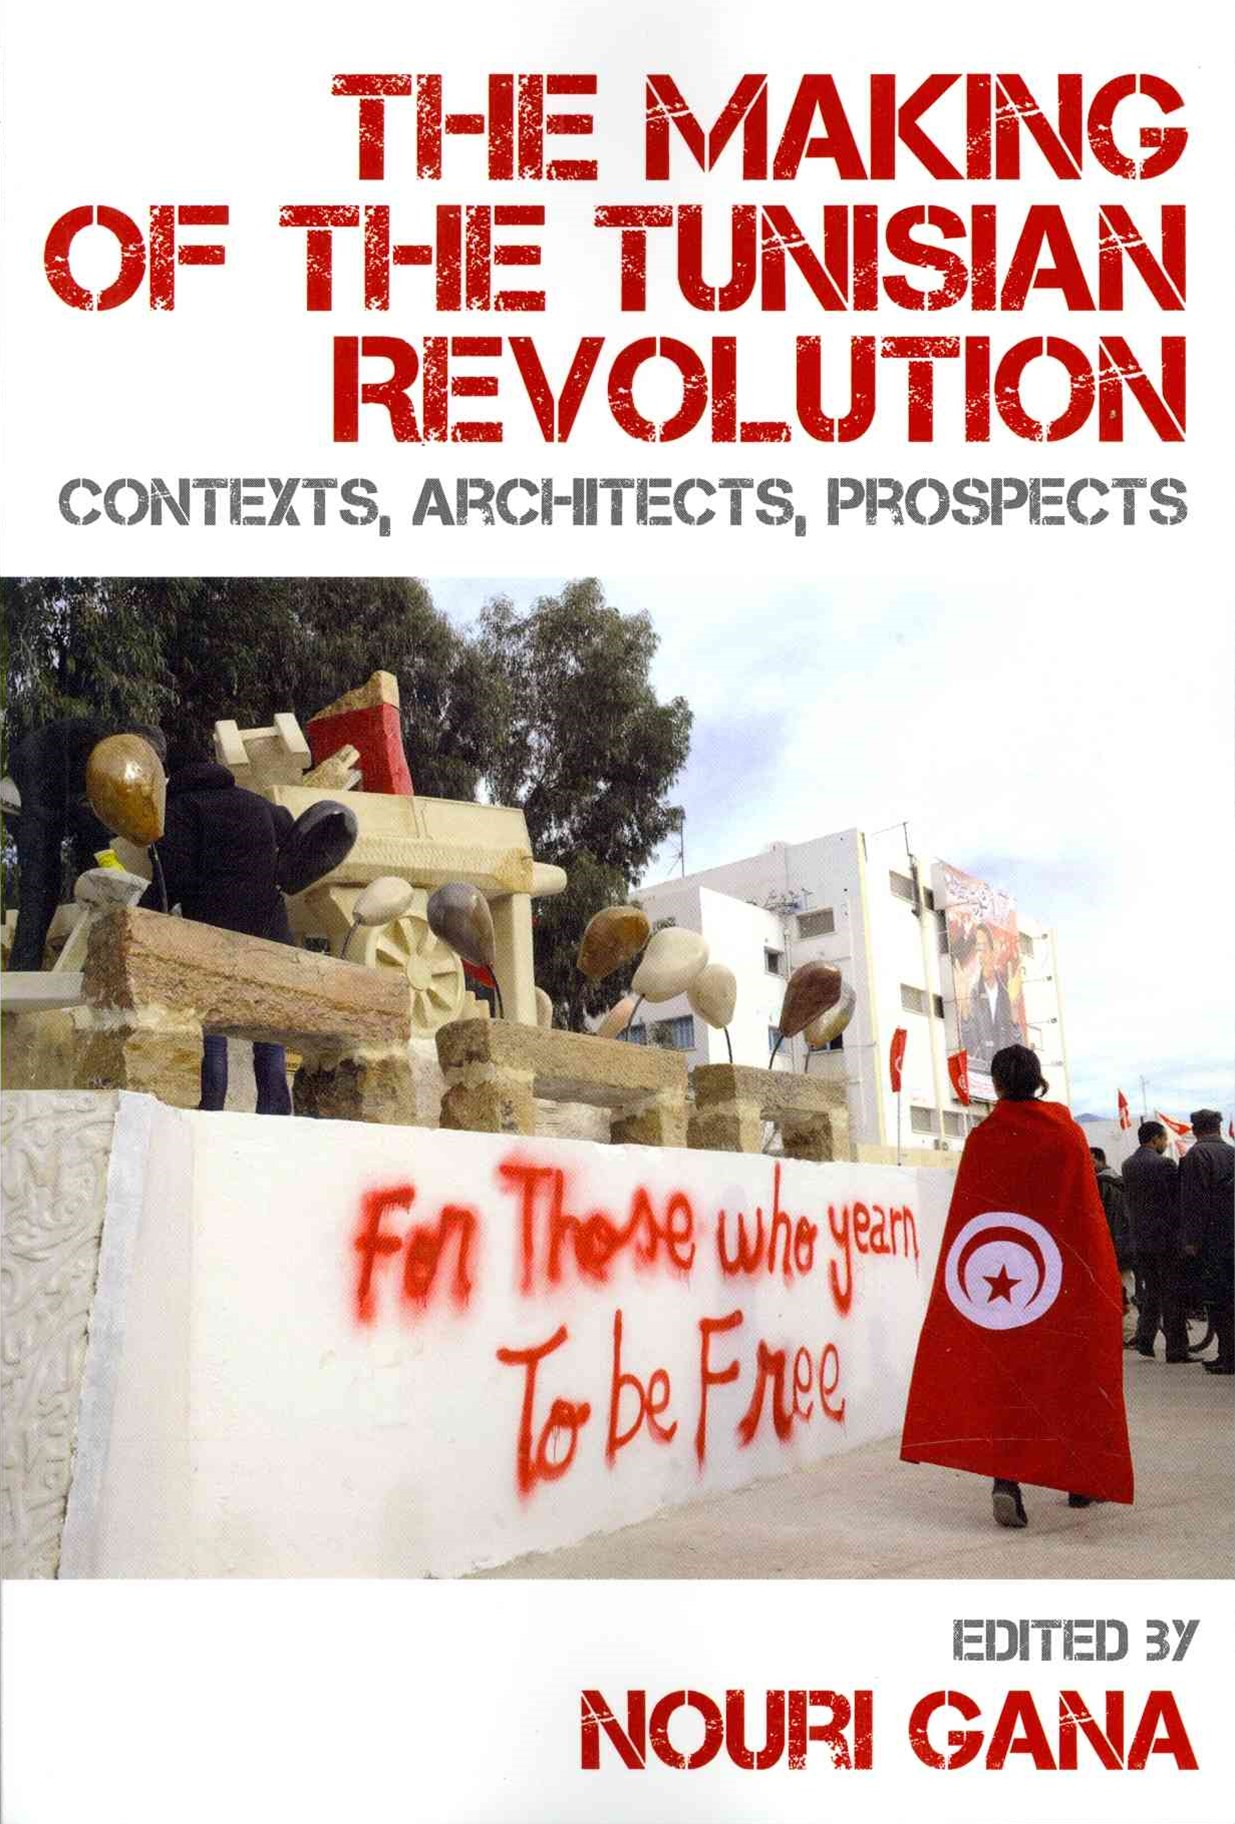 The Making of the Tunisian Revolution